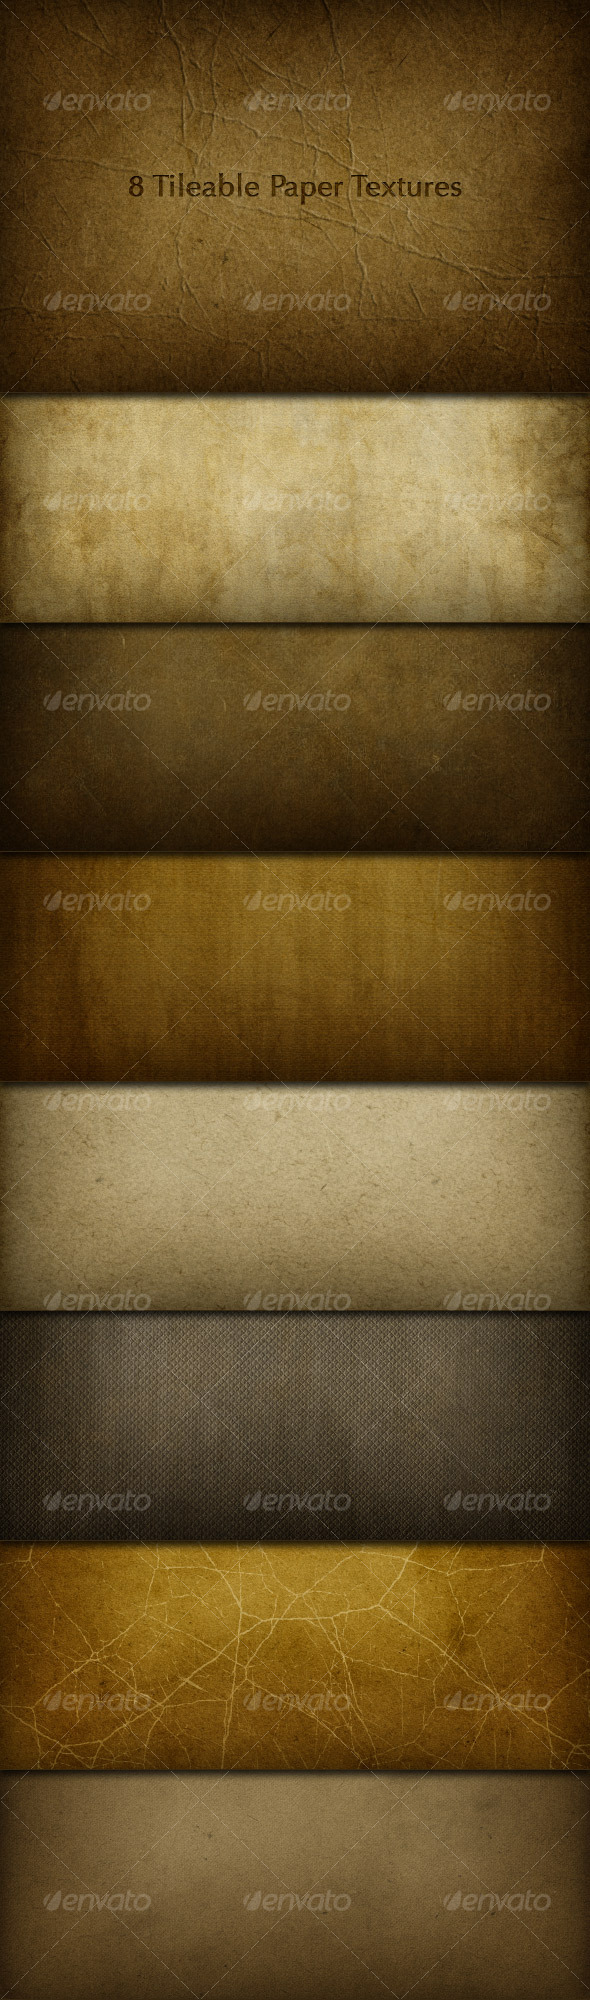 8 Tileable Paper Texture Photoshop Patterns - Miscellaneous Textures / Fills / Patterns